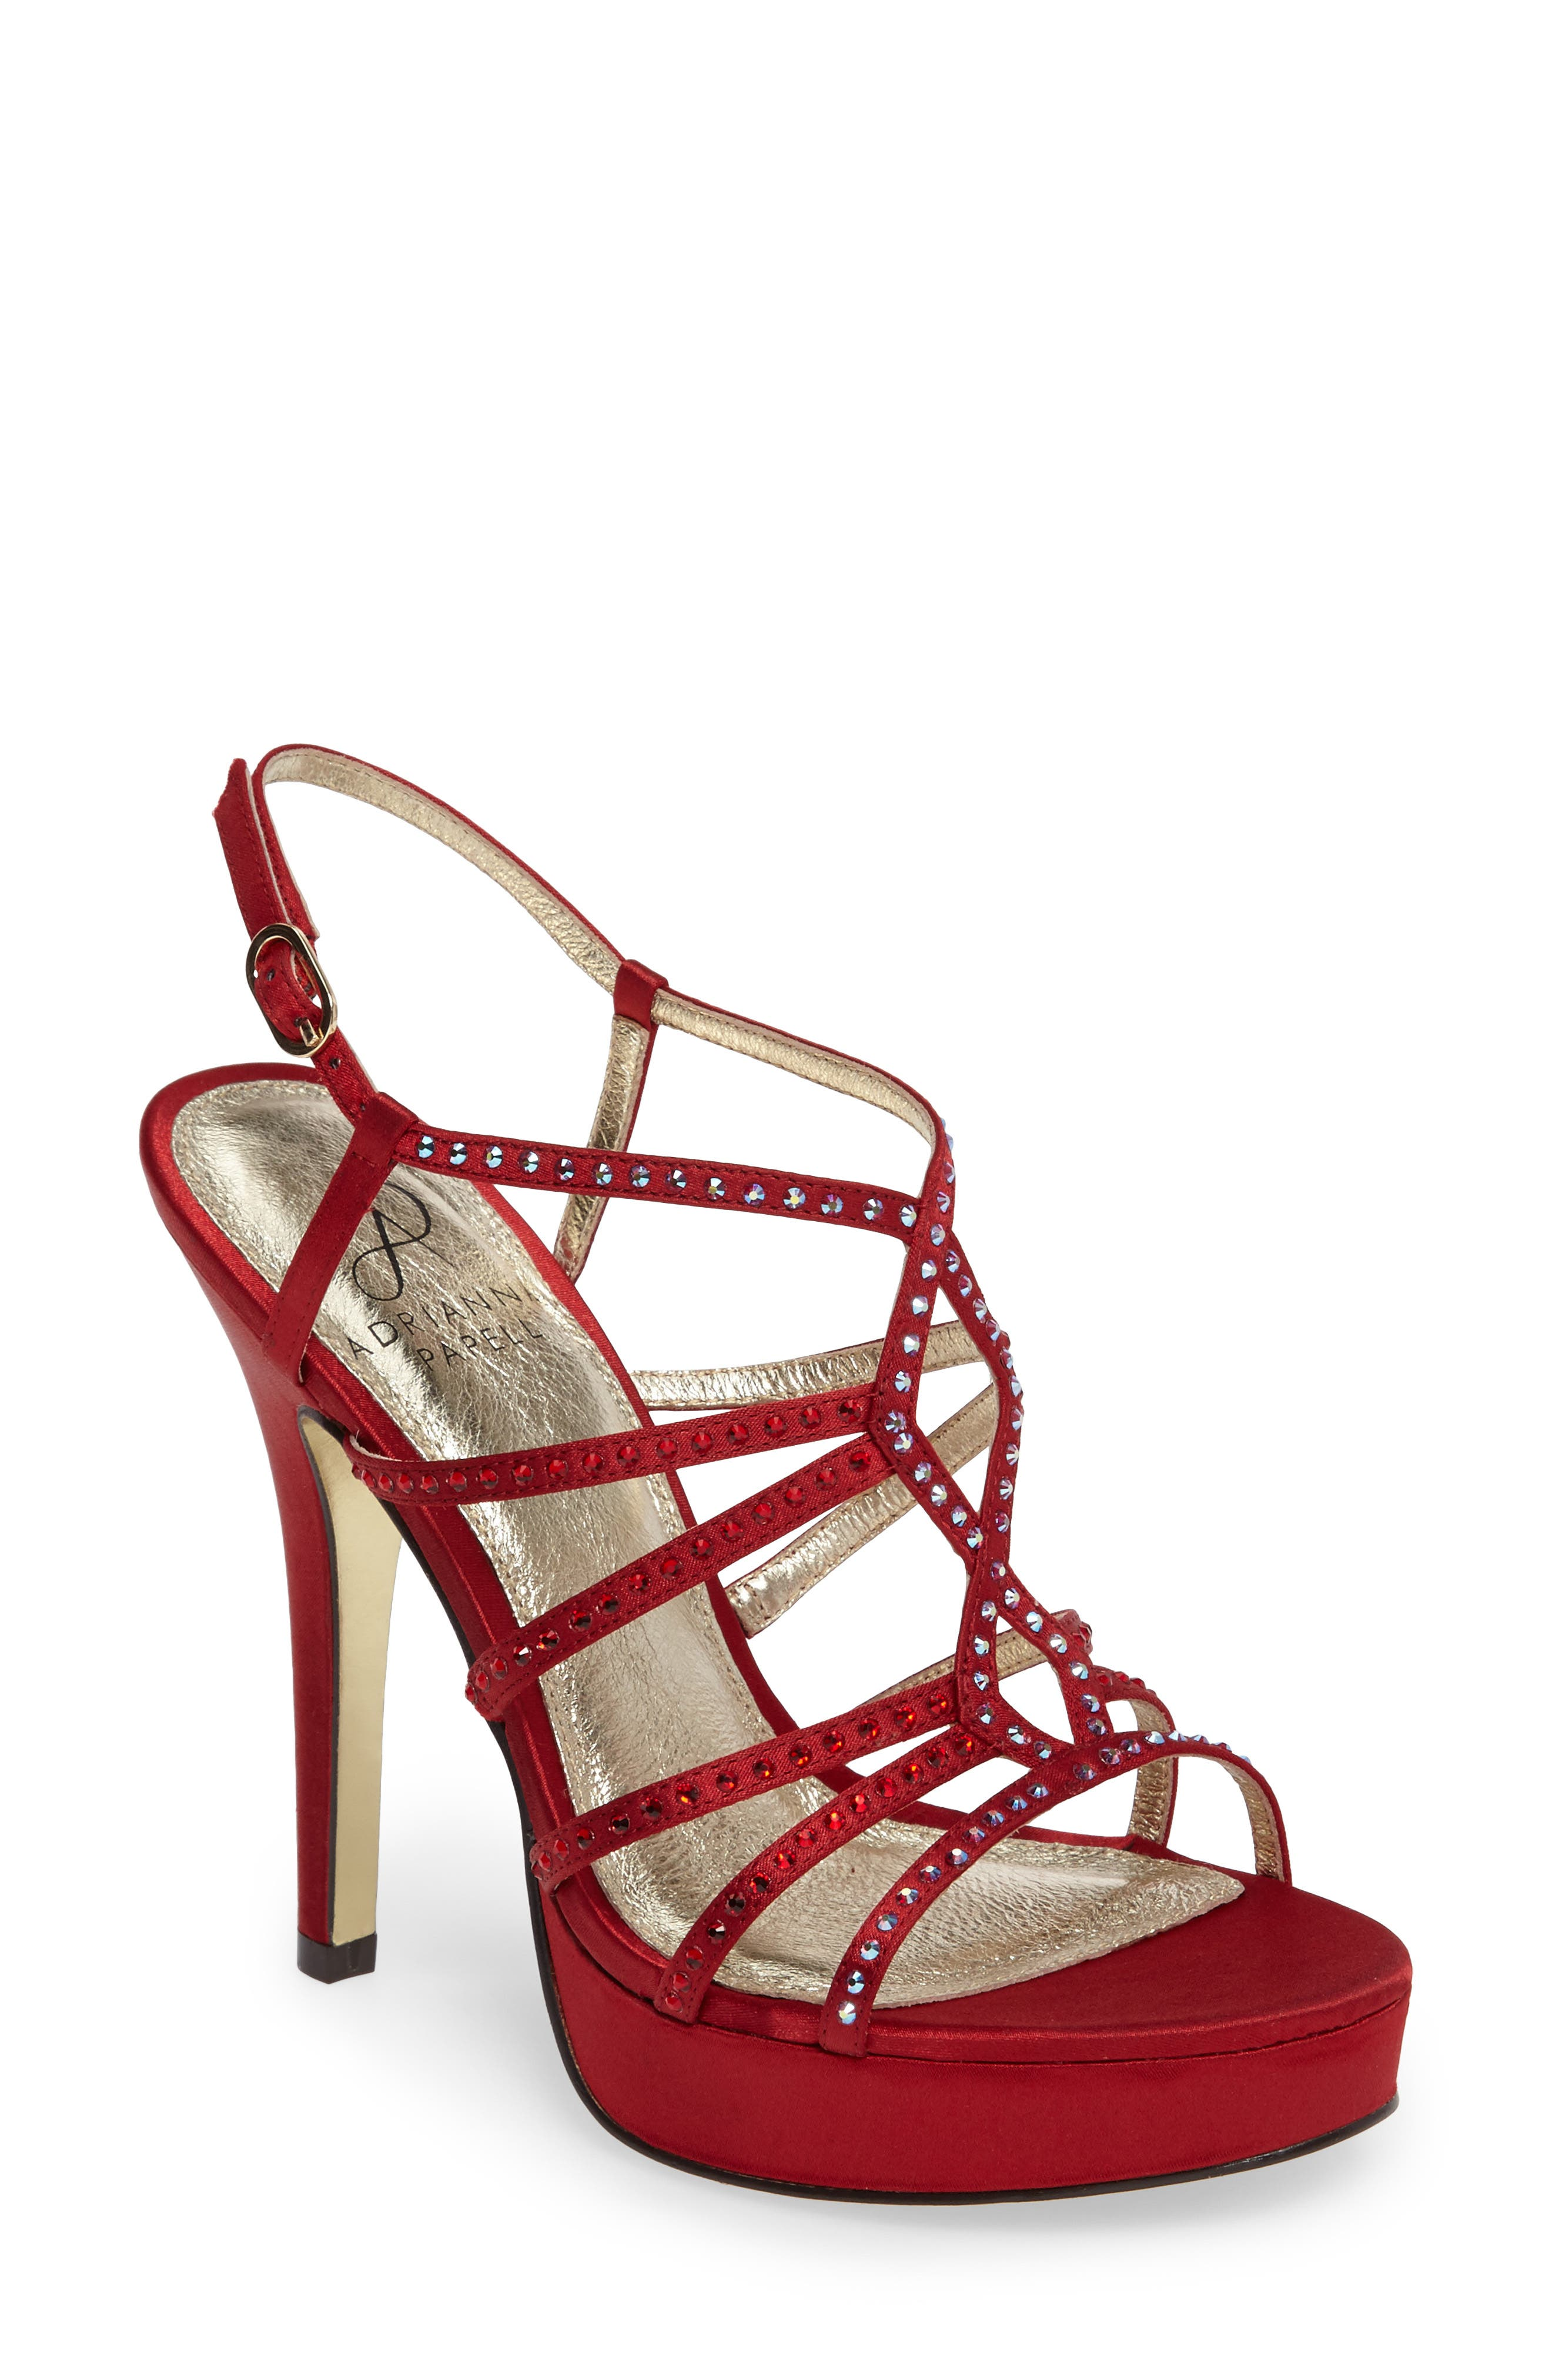 Miranda Embellished Platform Sandal,                             Main thumbnail 1, color,                             Red Classic Satin